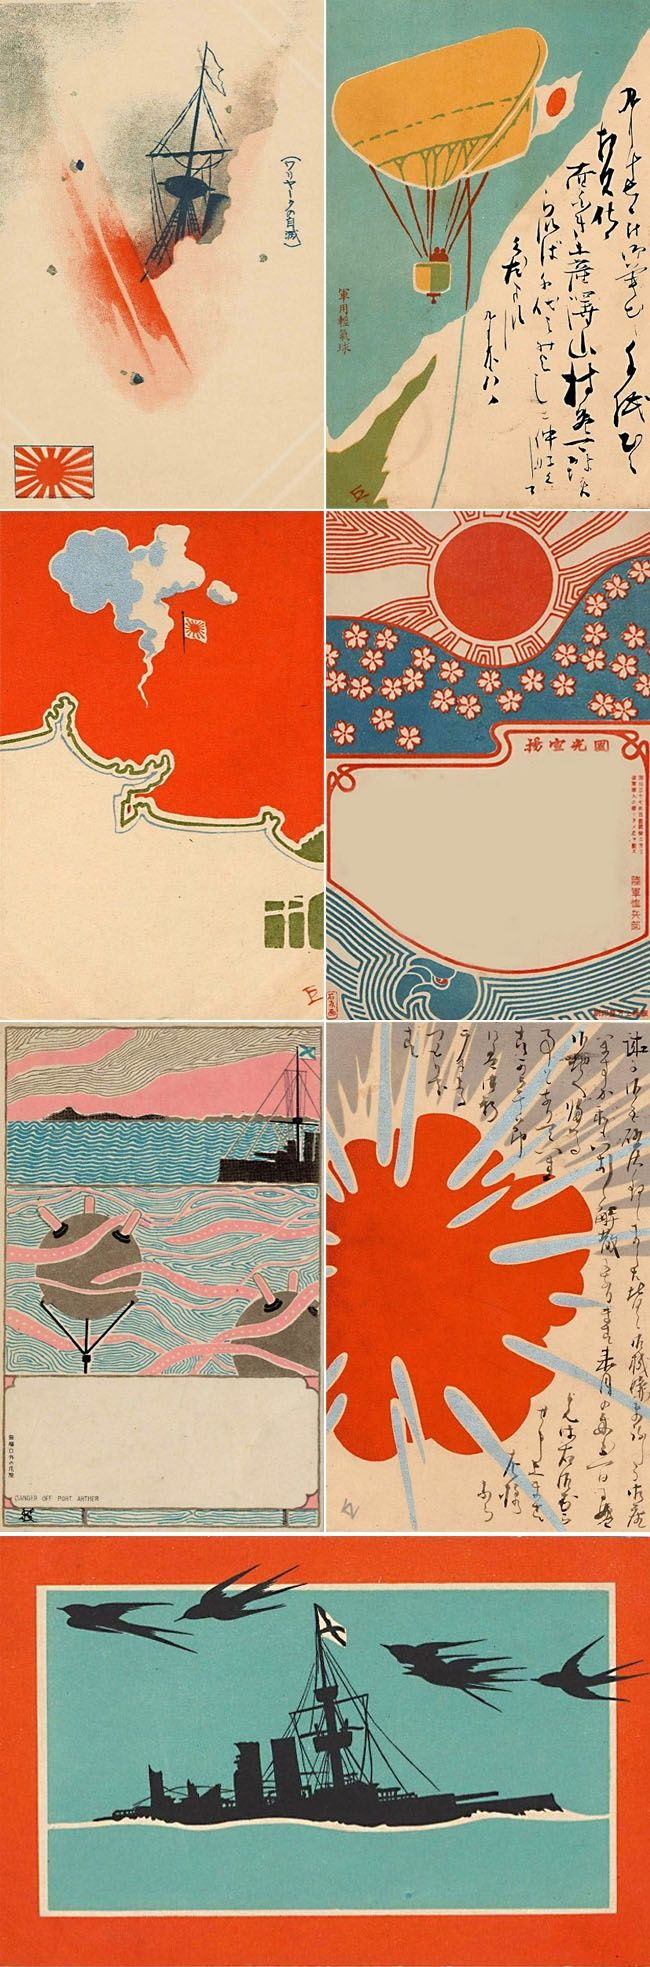 collection of japanese postcards. leonard a. lauder collection. http://ocw.mit.edu/ans7870/21f/21f.027/asia_rising/avant.html